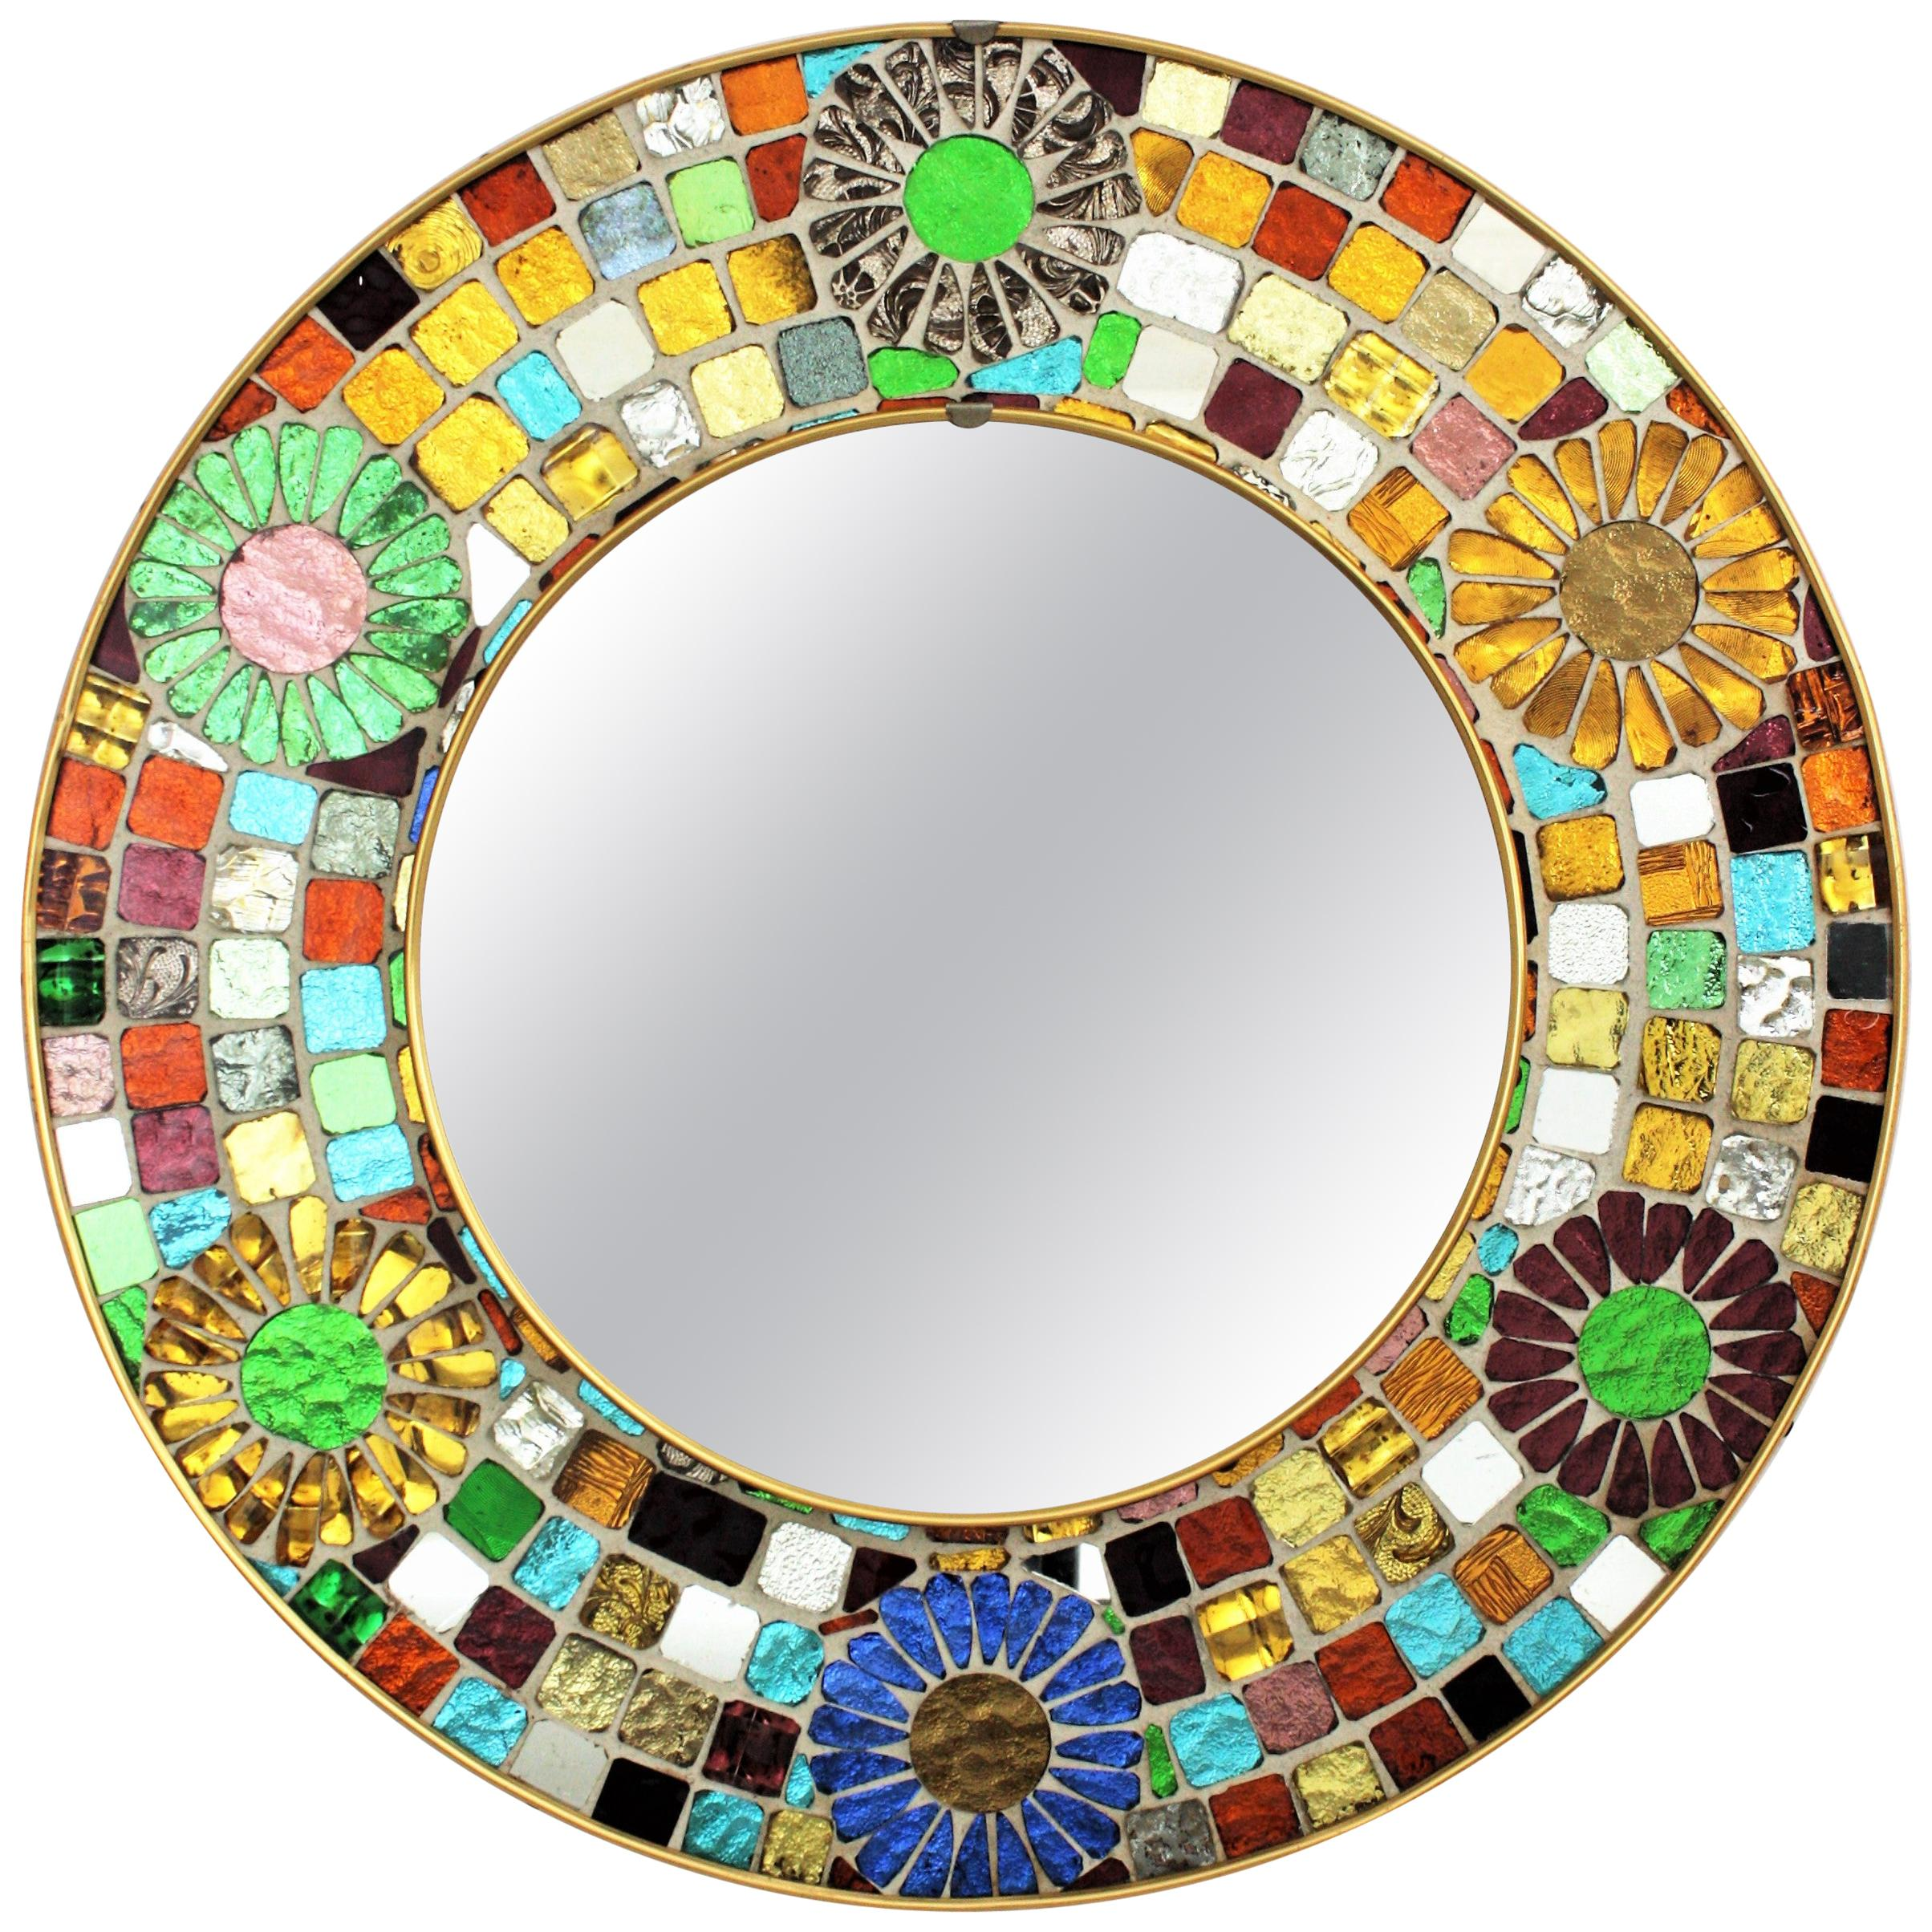 Multicolor Round Wall Mirror with Glass Mosaic Frame and Flower Accents